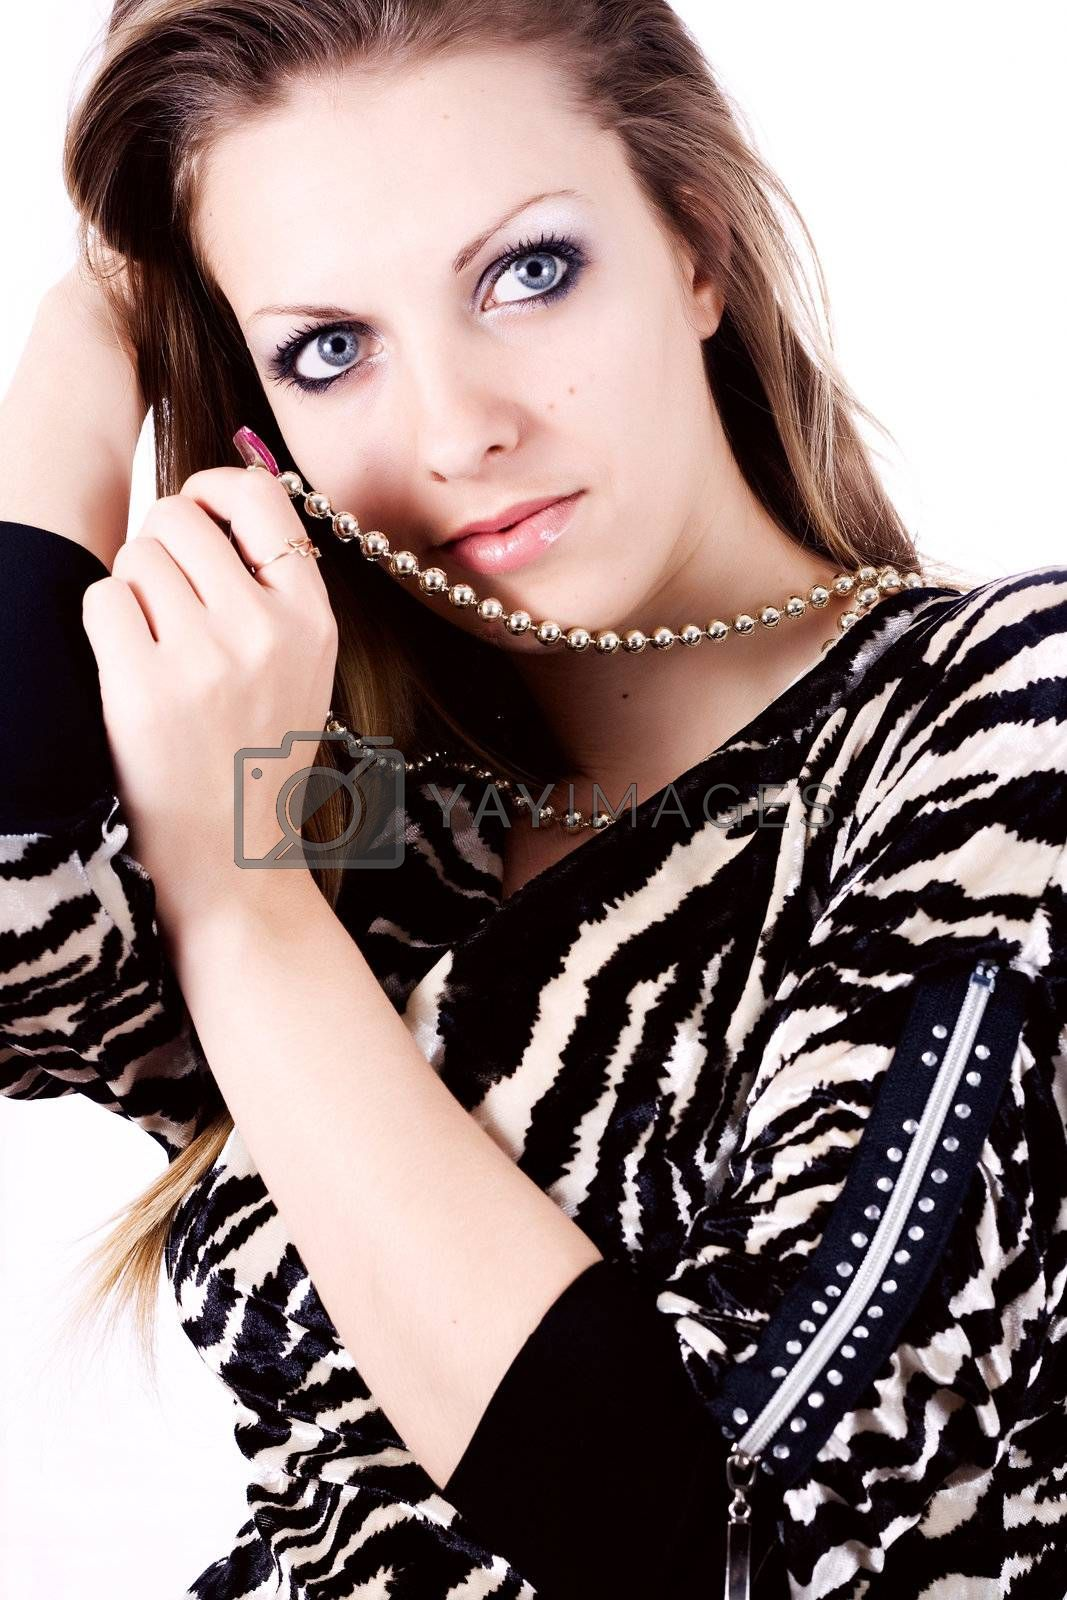 Ambition and greed in fashion woman with jewelry in hands on white background